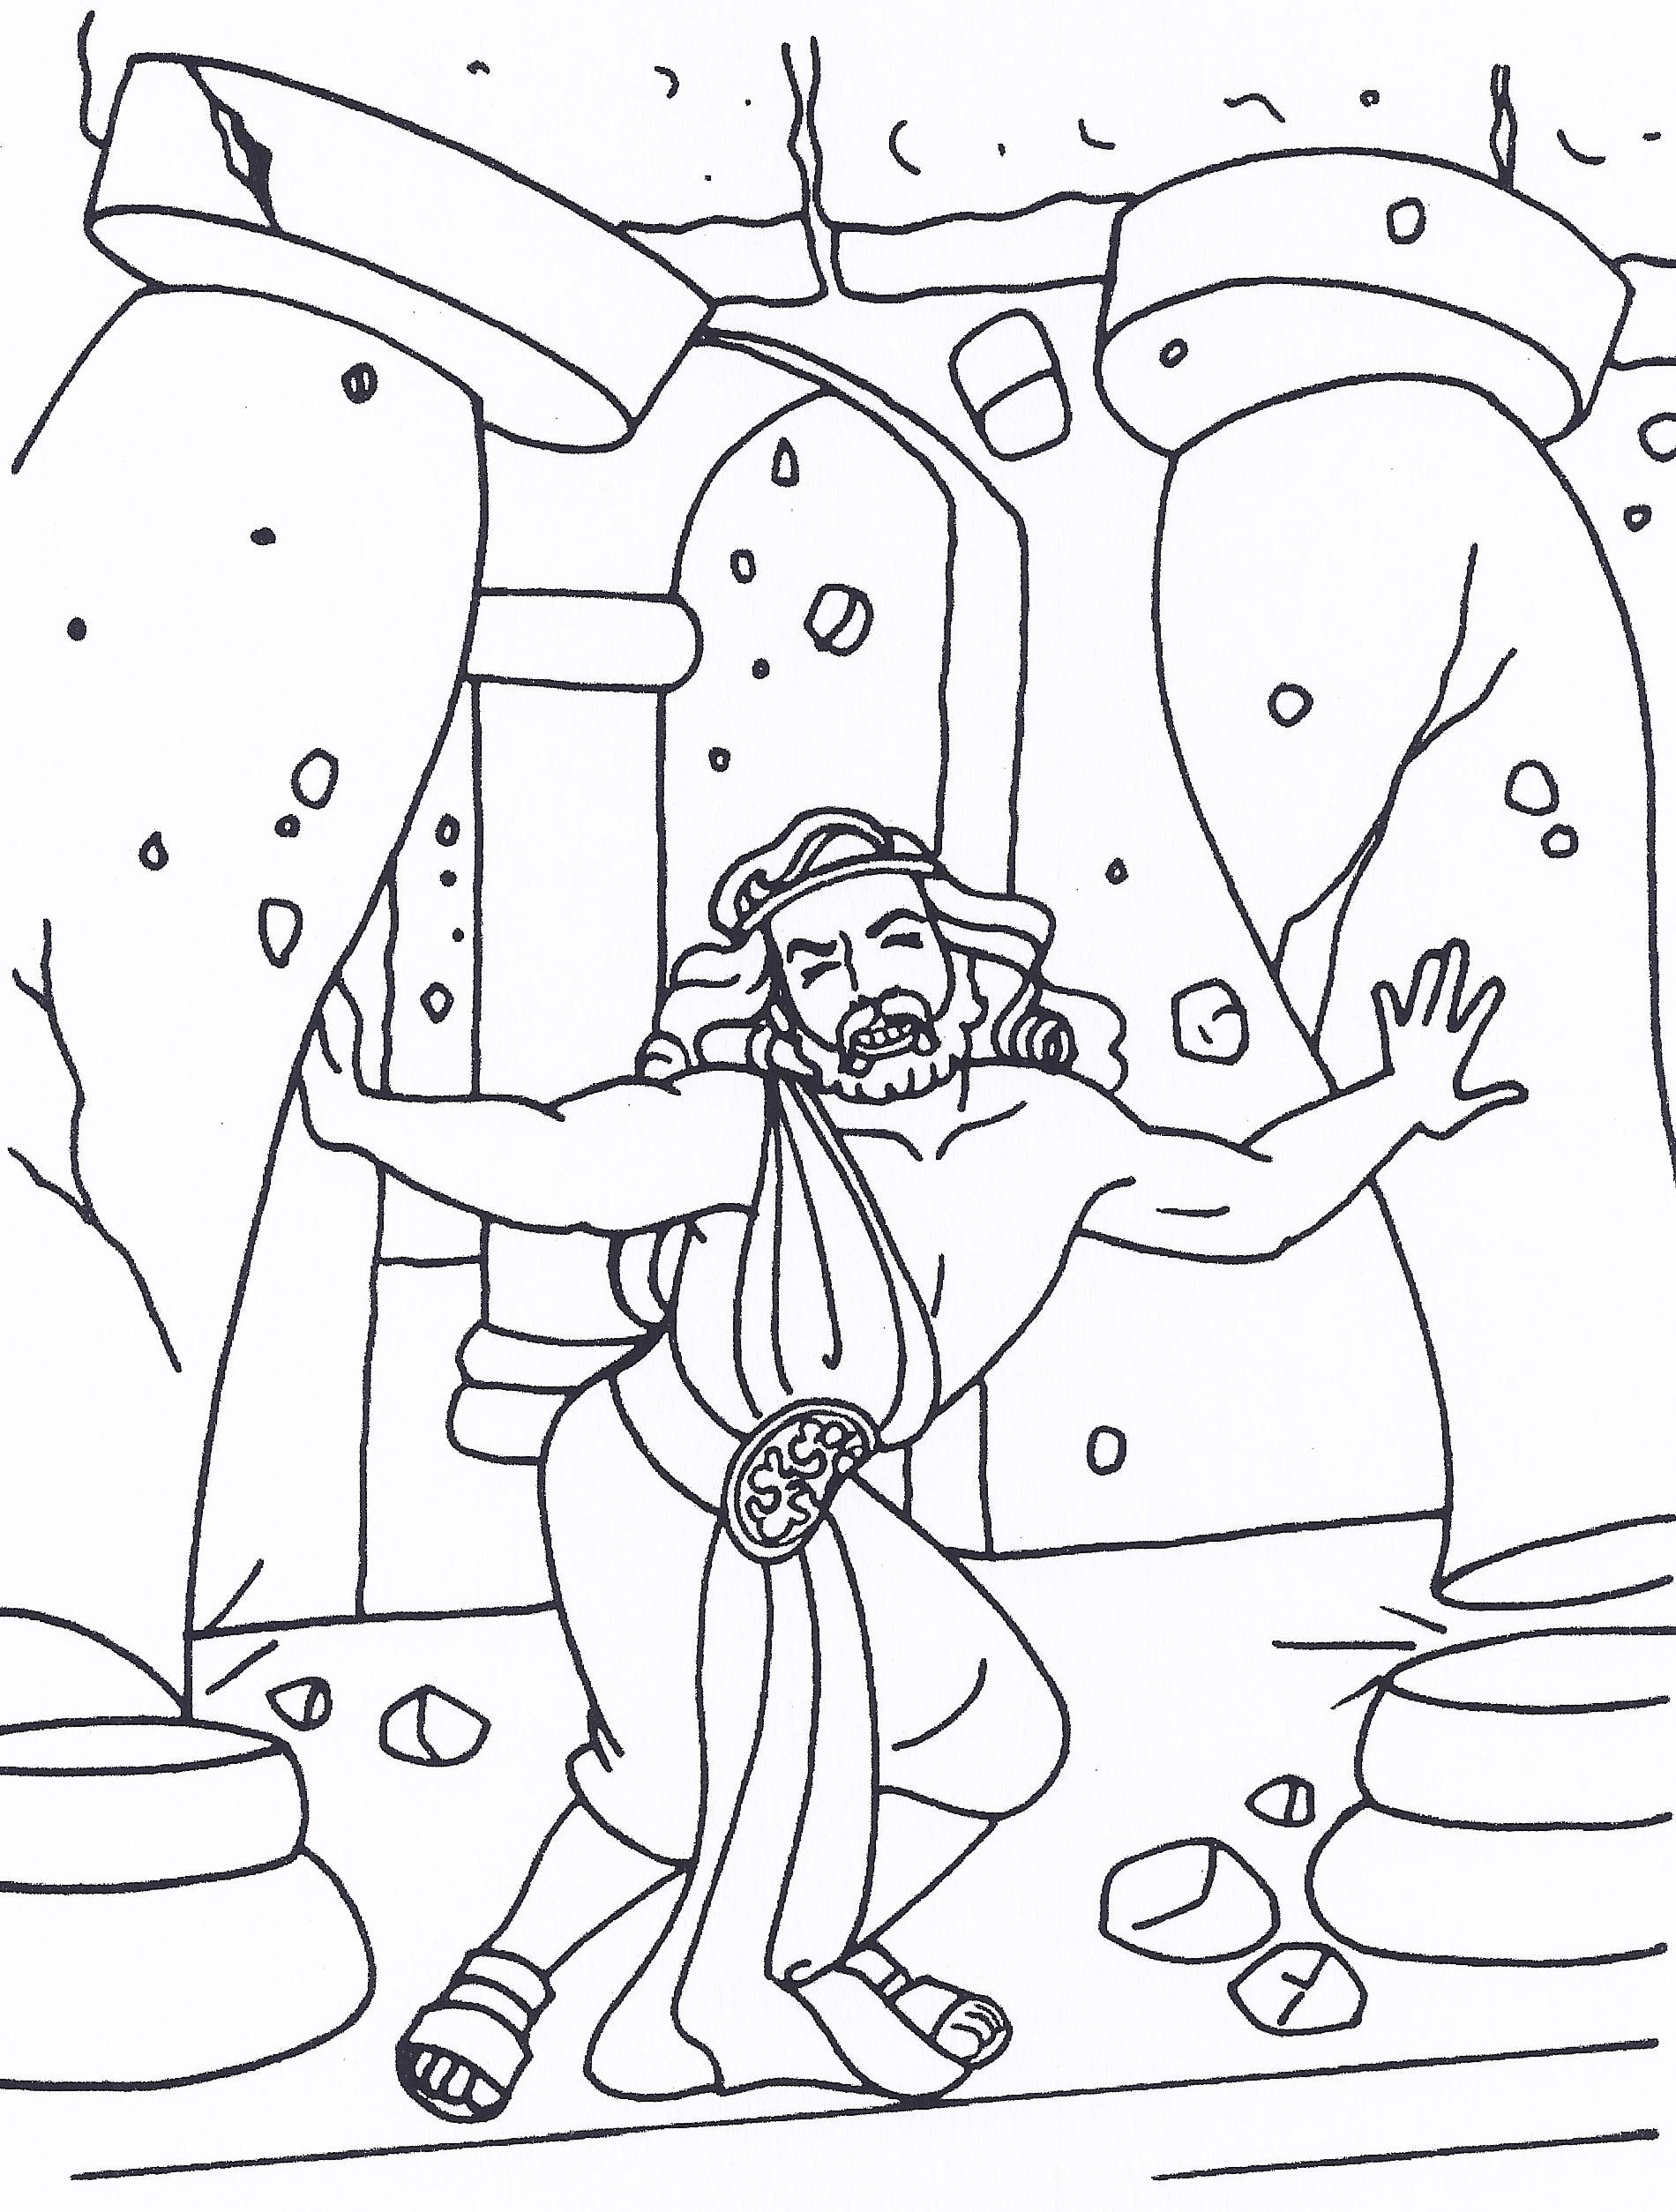 Samson Coloring Pages Bible Coloring Pages